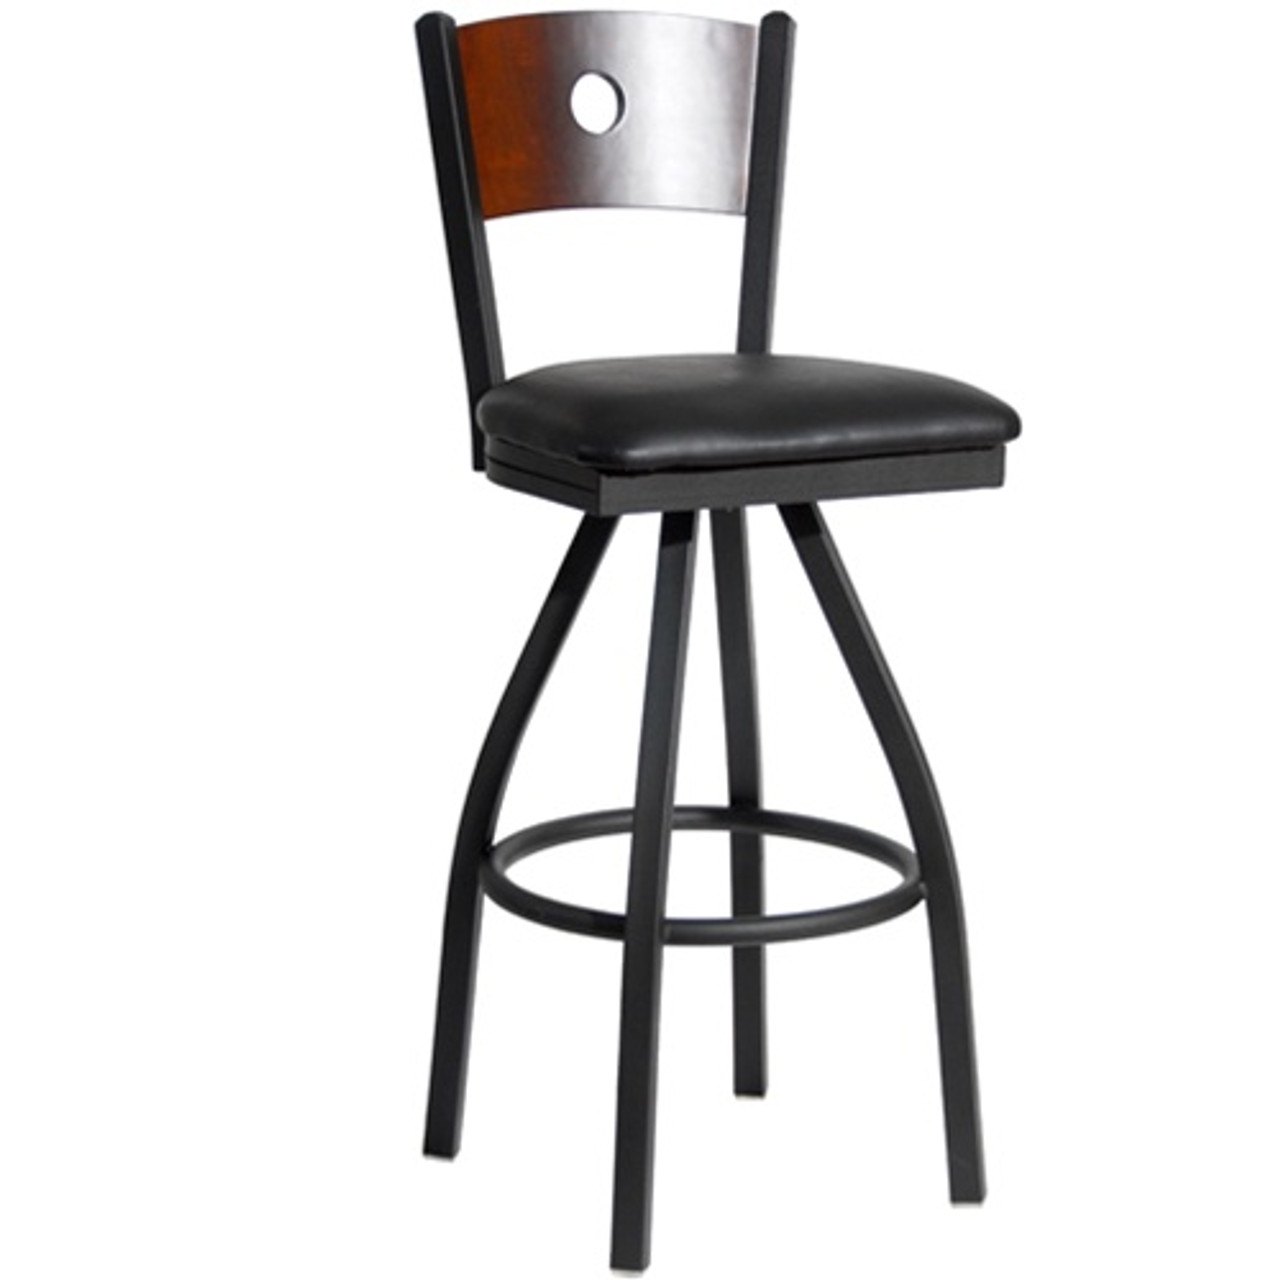 Magnificent Bfm Seating Darby Metal Circle Wood Back Restaurant Swivel Bar Stool With Vinyl Seat 2152S Sbv Squirreltailoven Fun Painted Chair Ideas Images Squirreltailovenorg